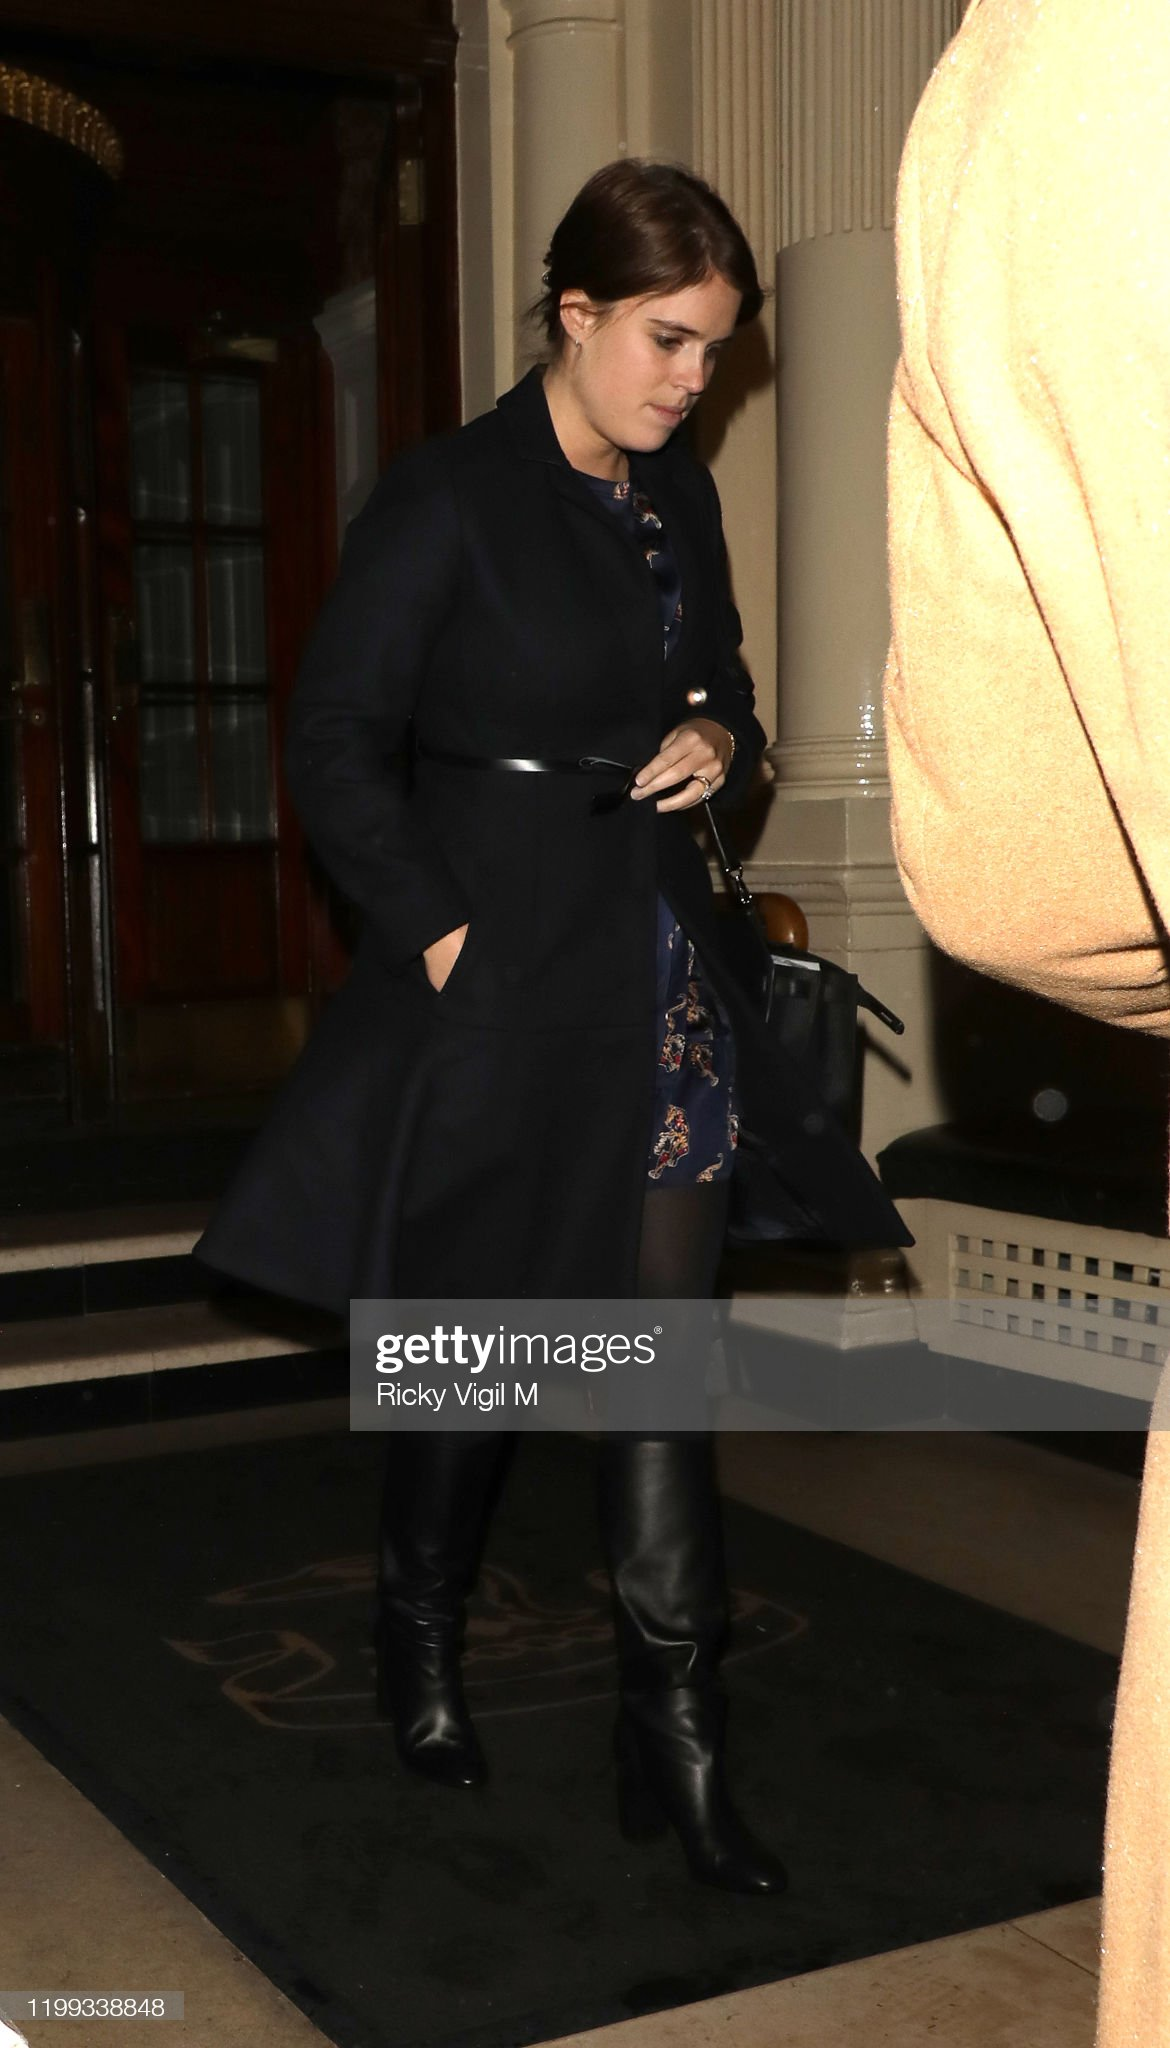 https://media.gettyimages.com/photos/princess-eugenie-seen-on-a-night-out-leaving-the-connaught-hotel-on-picture-id1199338848?s=2048x2048